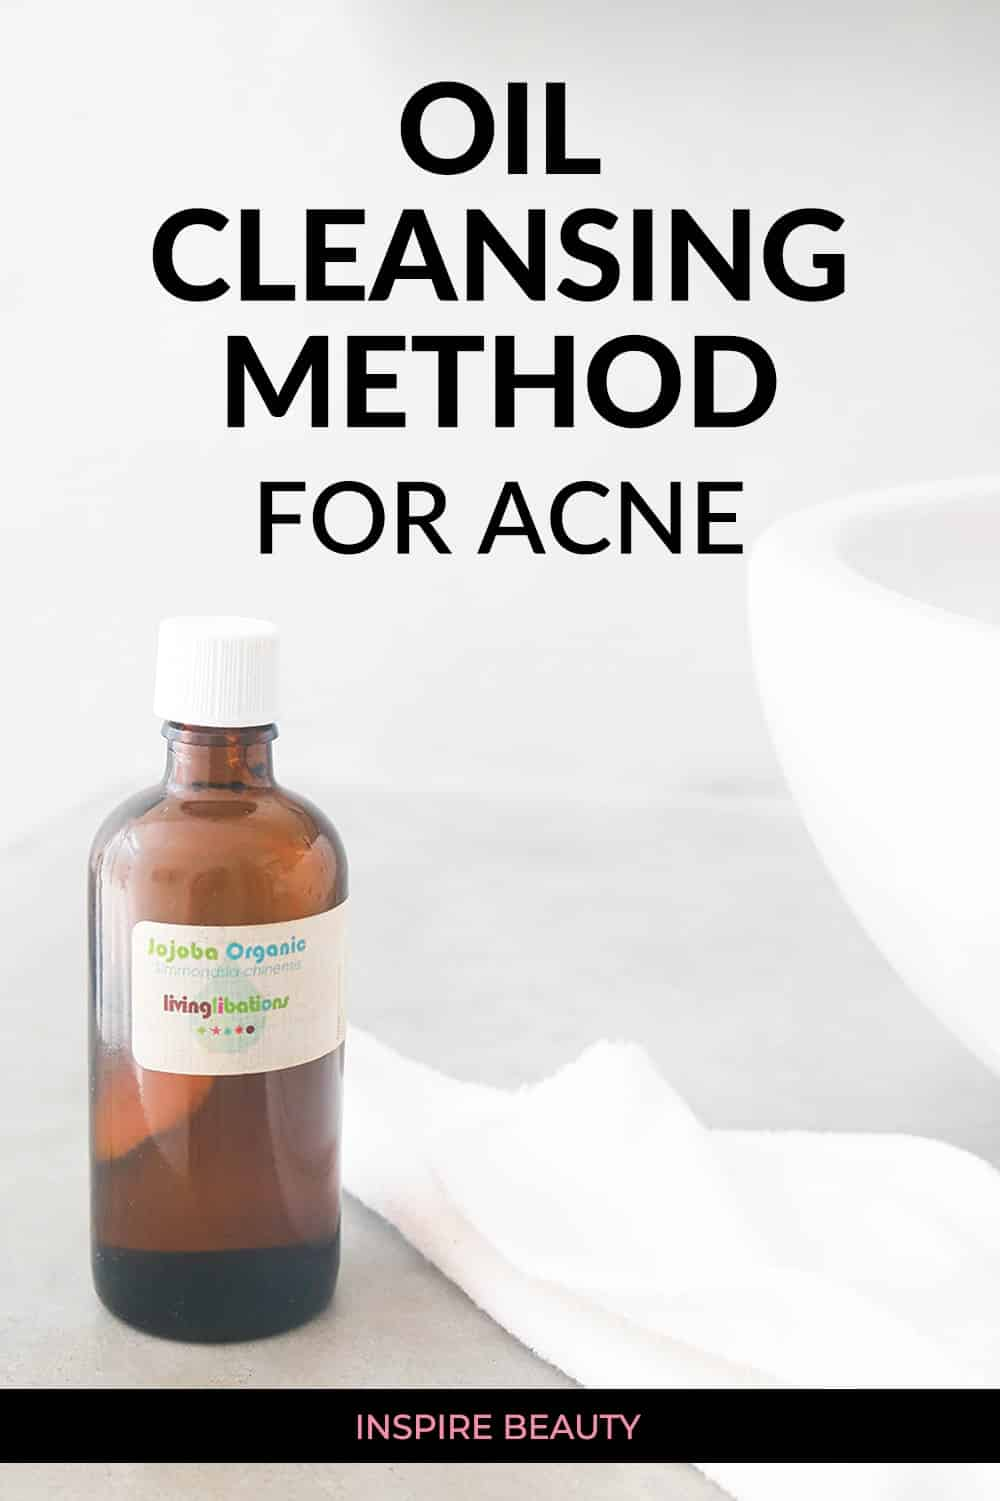 Oil cleansing method for acne, plus oil cleansing method instrcutions, purging, video demo, and tips